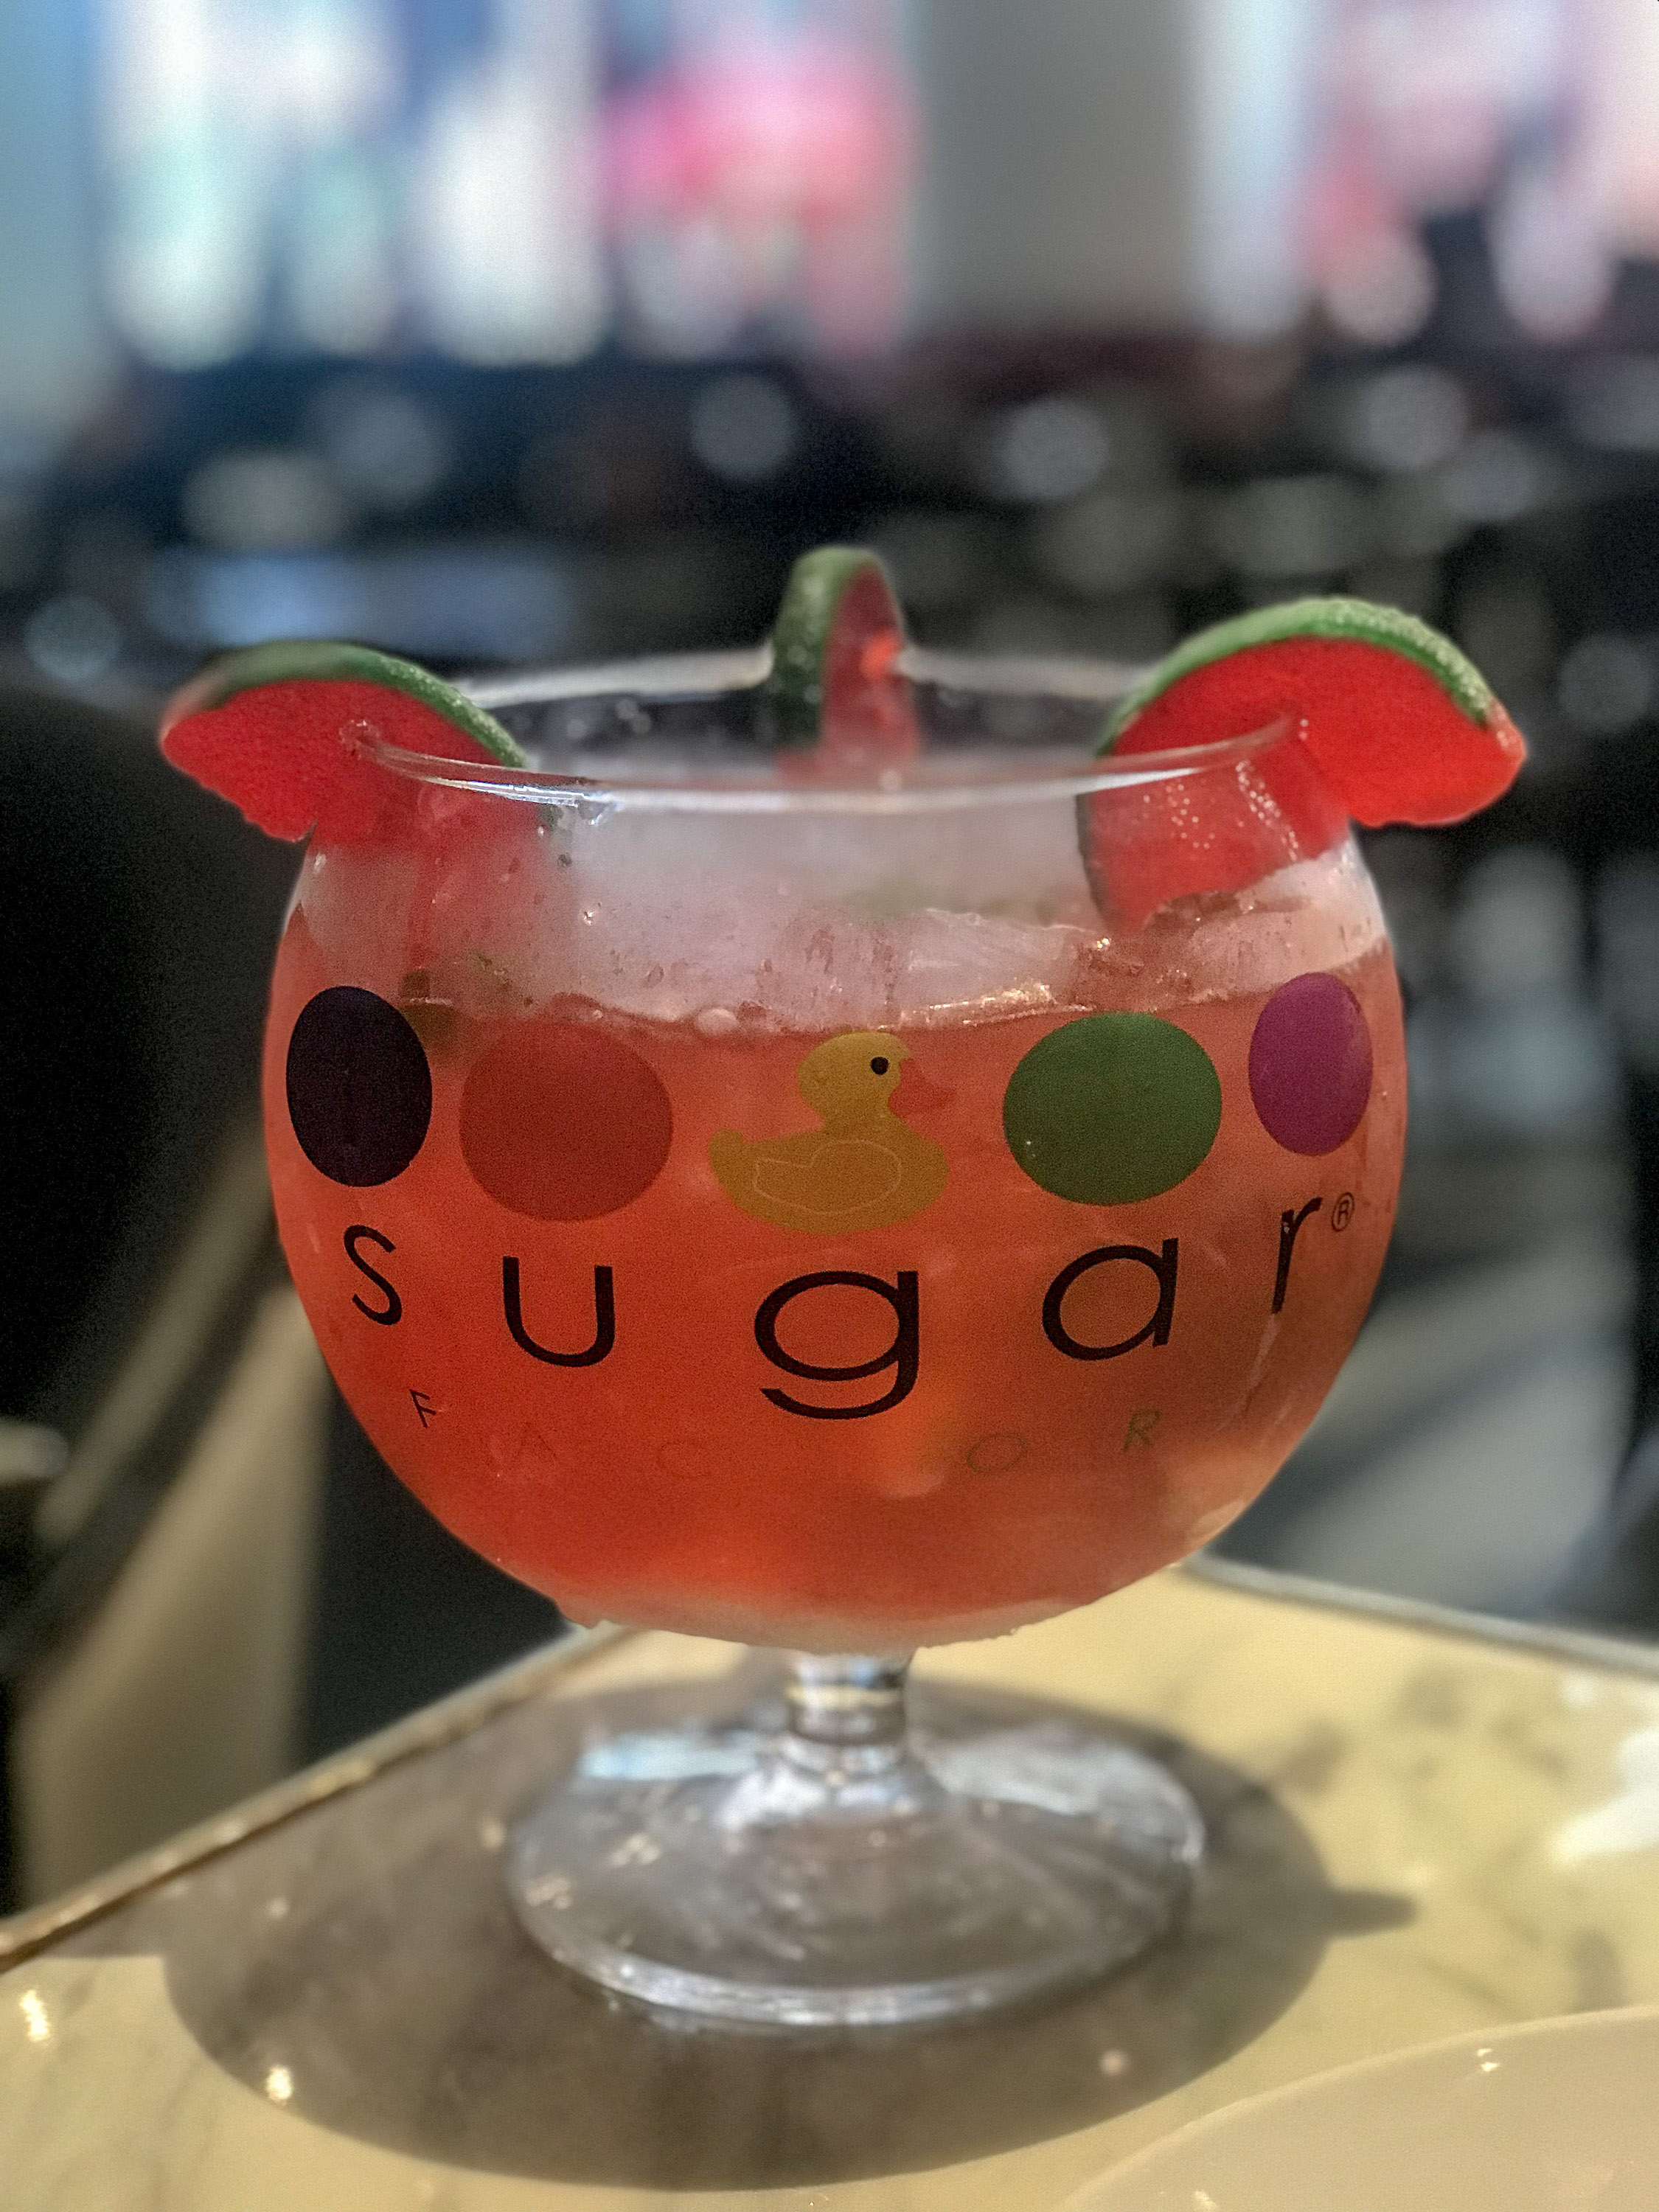 Where's good to eat in Las Vegas? Sugar Factory at Fashion Show Mall is one of my favourite places to dine when in Vegas | Food & Travel Guide | Elle Blonde Luxury Lifestyle Destination Blog